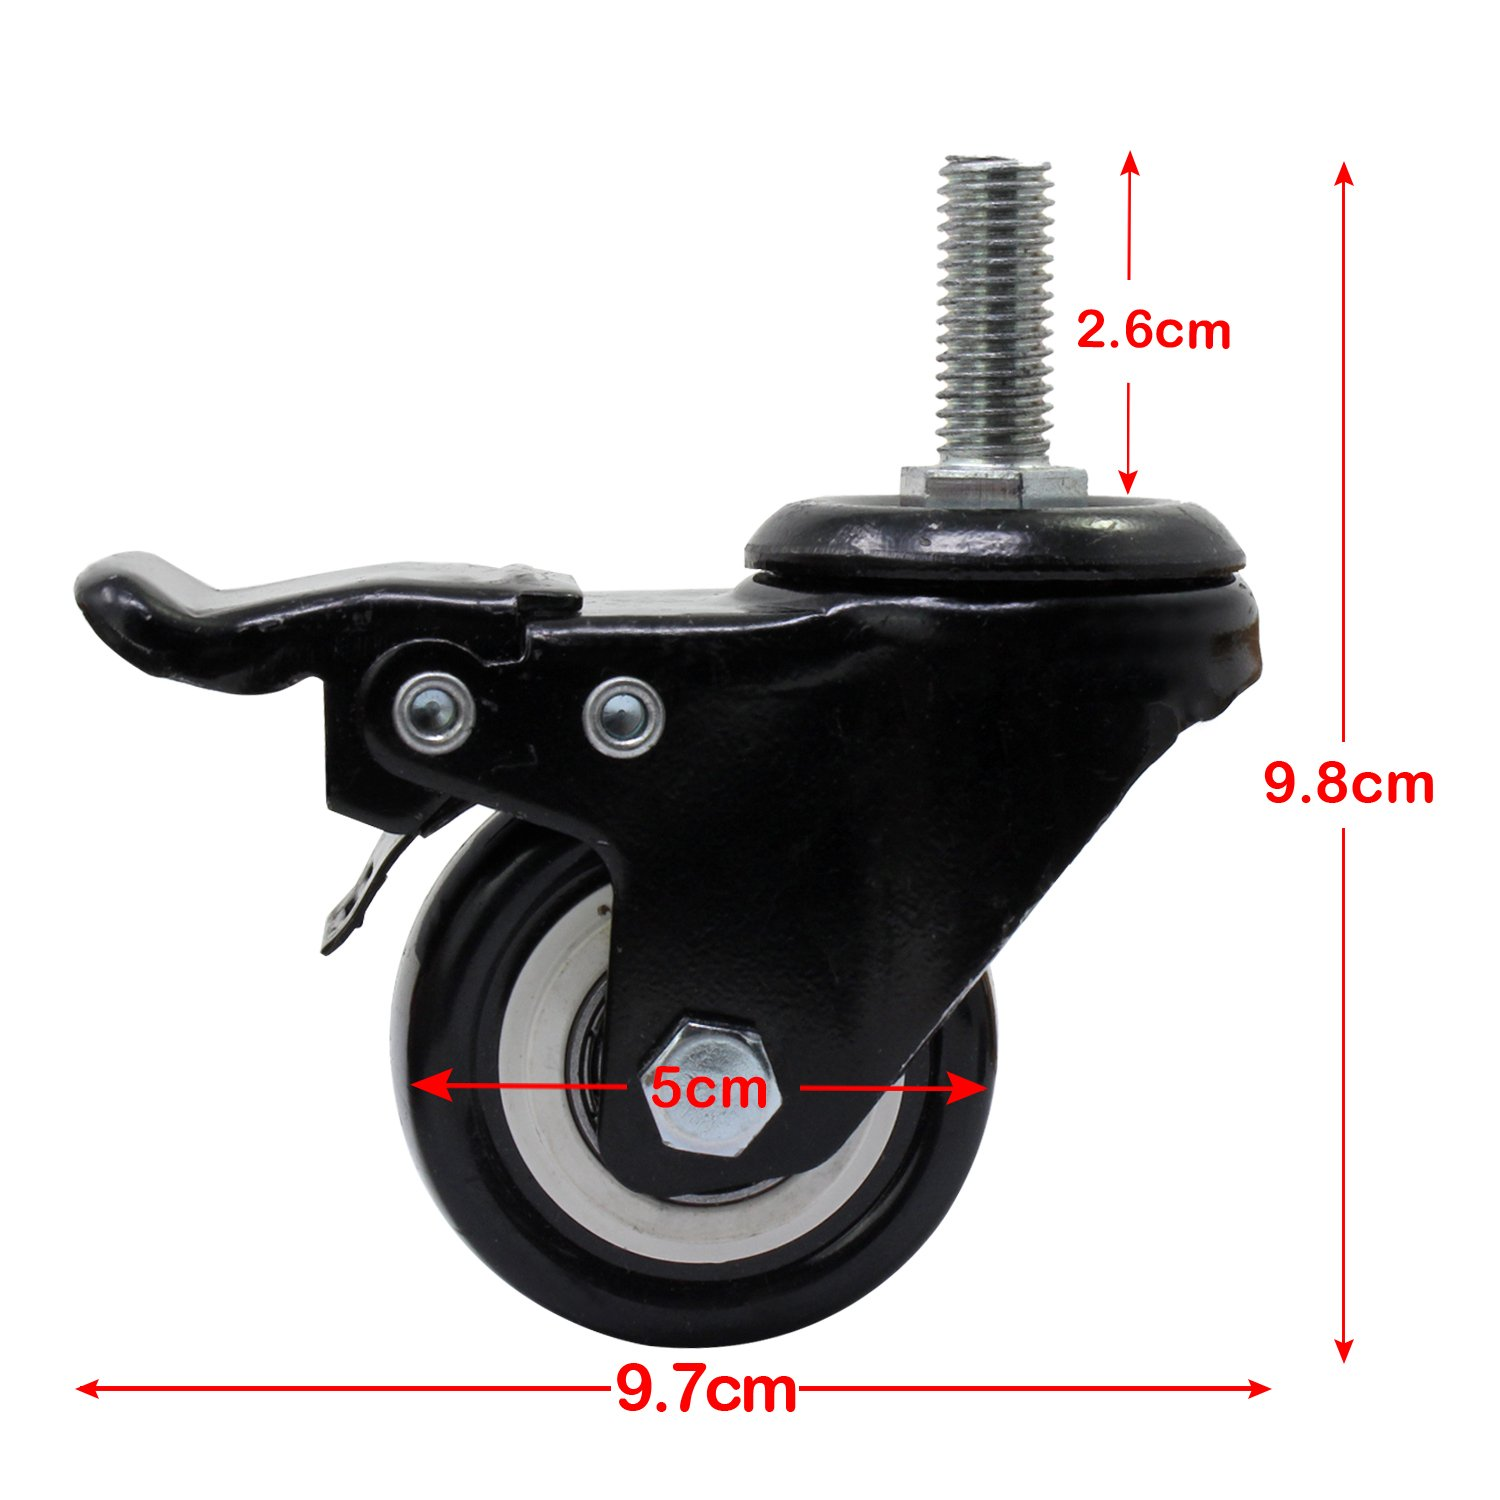 OCR 50MM Caster Rubber Base 360 Degree Caster Rubber Wheel With Brake for Shopping carts, Hand Trolley, Tools, Movable Furniture,Office Chair 4 Pcs Black (2''-Threaded shaft Wheel) by OCR (Image #3)